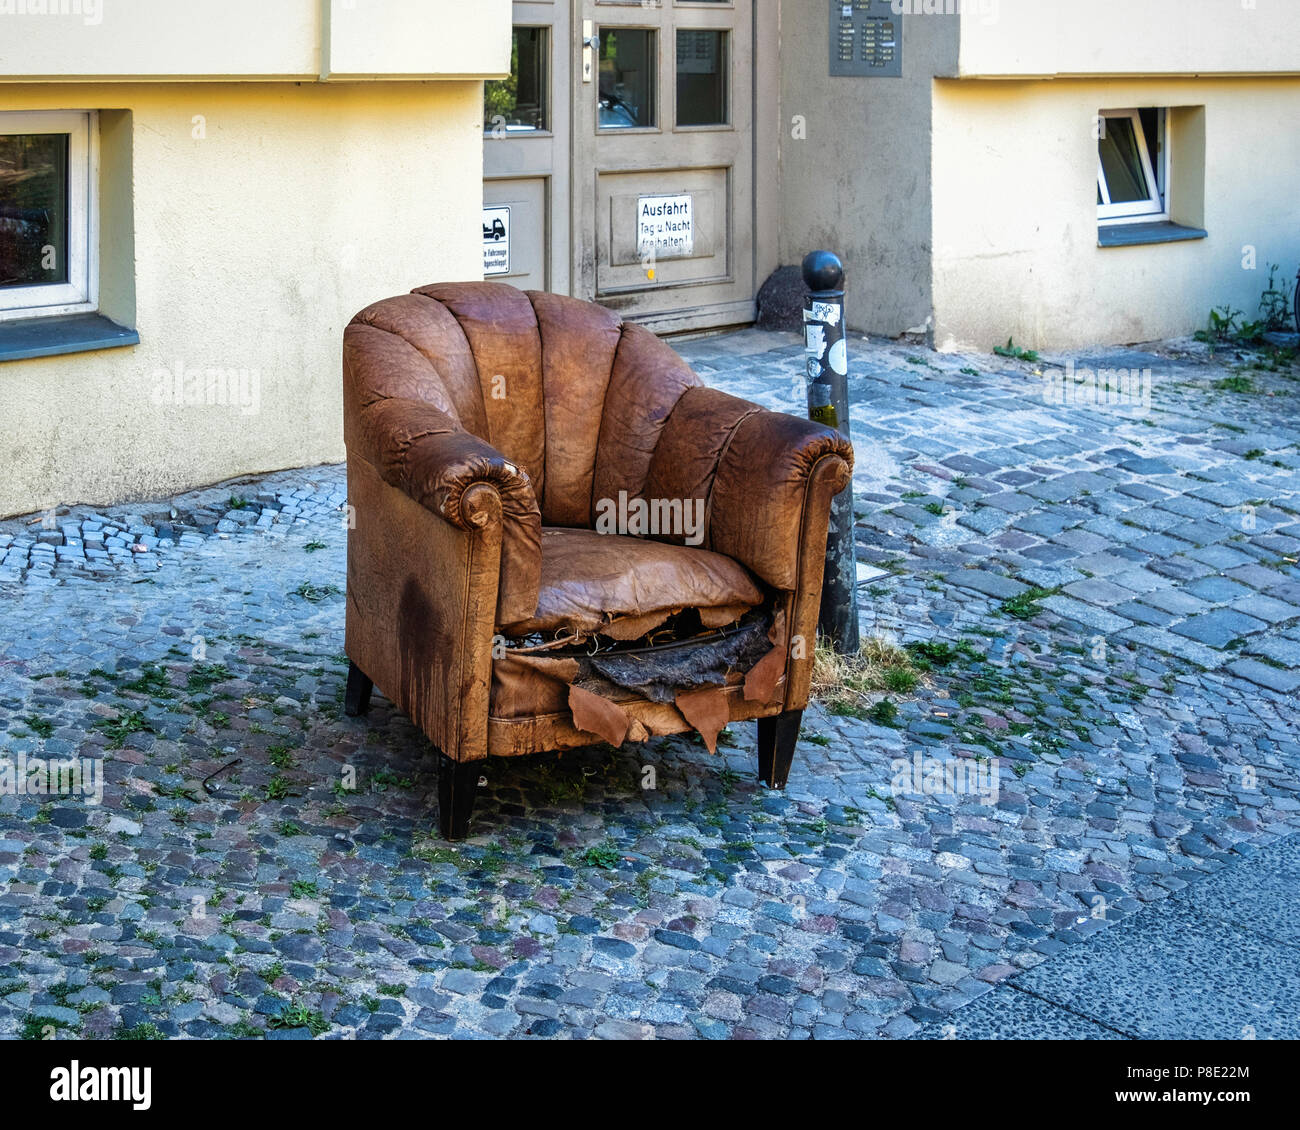 Old Leather Chair Stockfotos & Old Leather Chair Bilder - Alamy